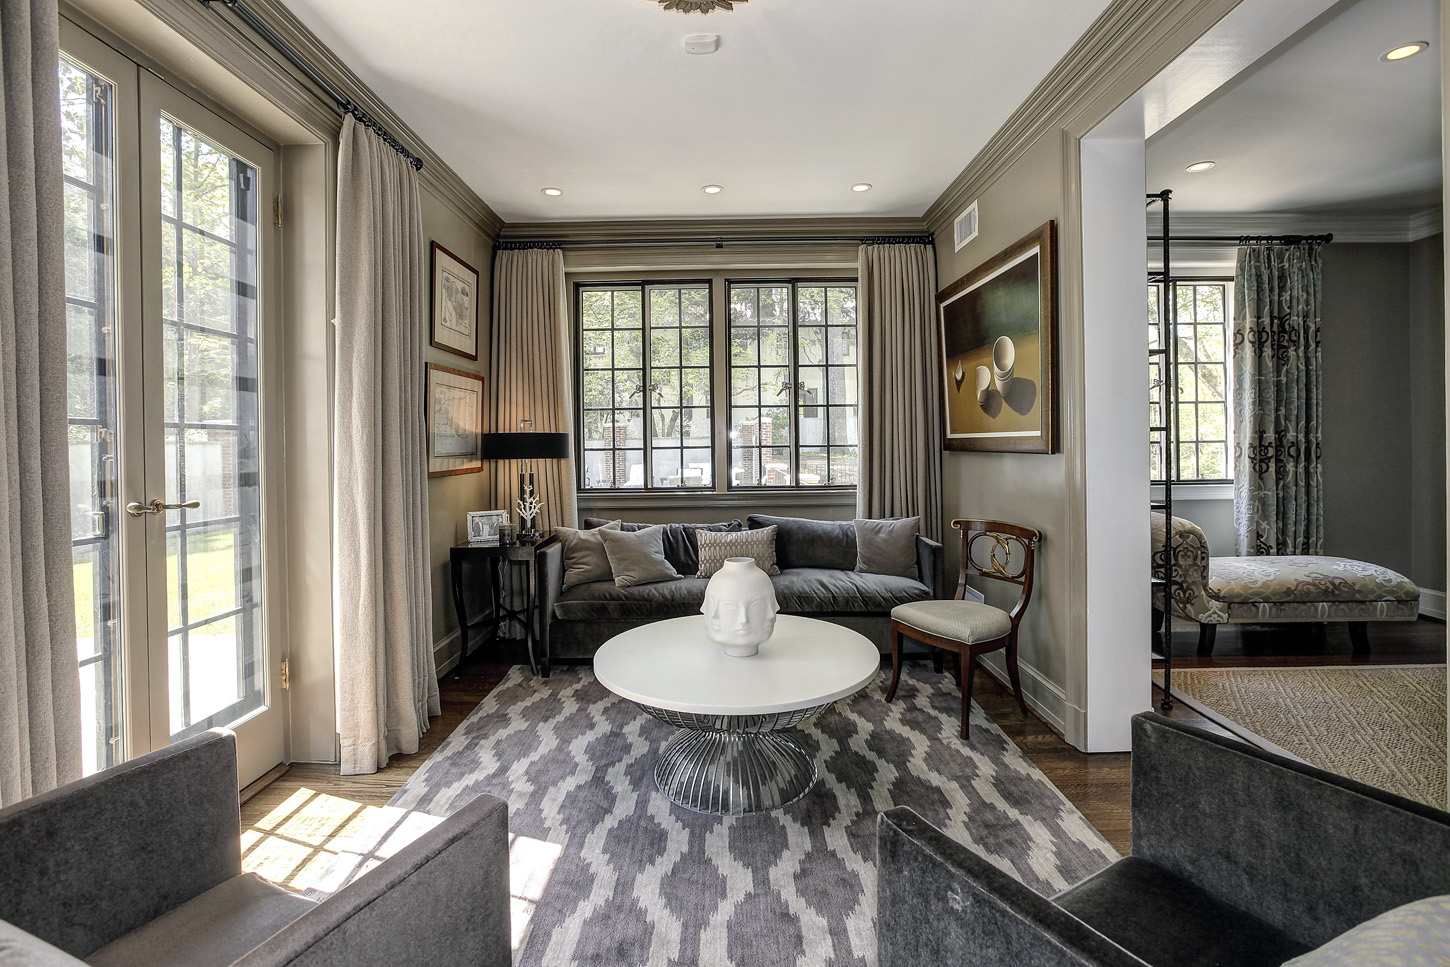 The Obama Family Will Live In a 9 Bedroom D.C.  MansionCredit: HomeVisit.com;